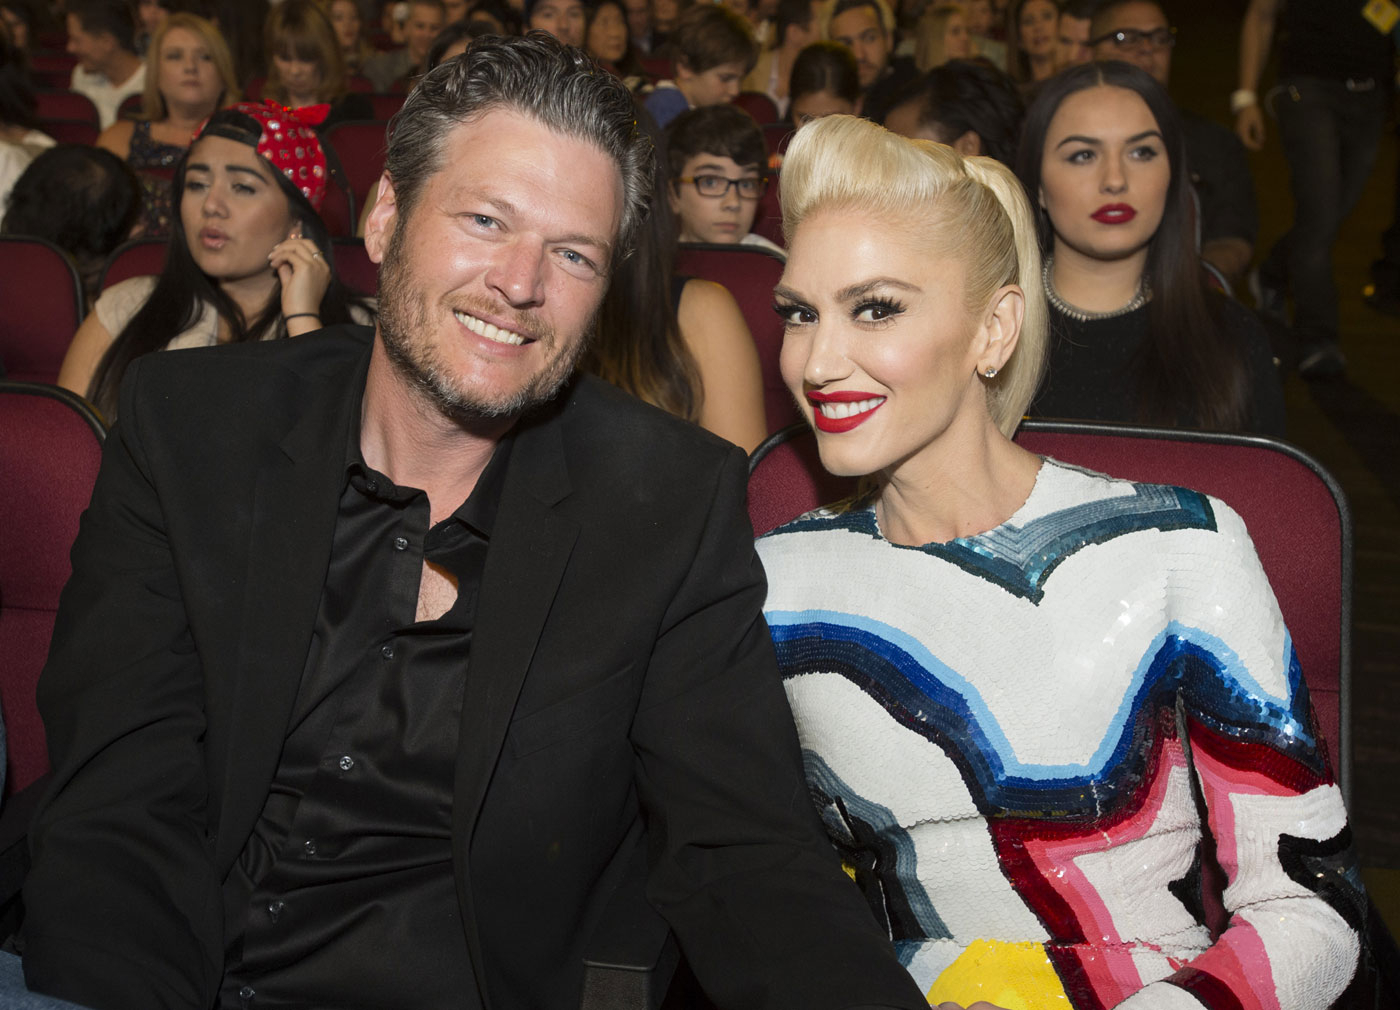 Blake Shelton and Gwen Stefani will perform their duet on 'The Voice' next week